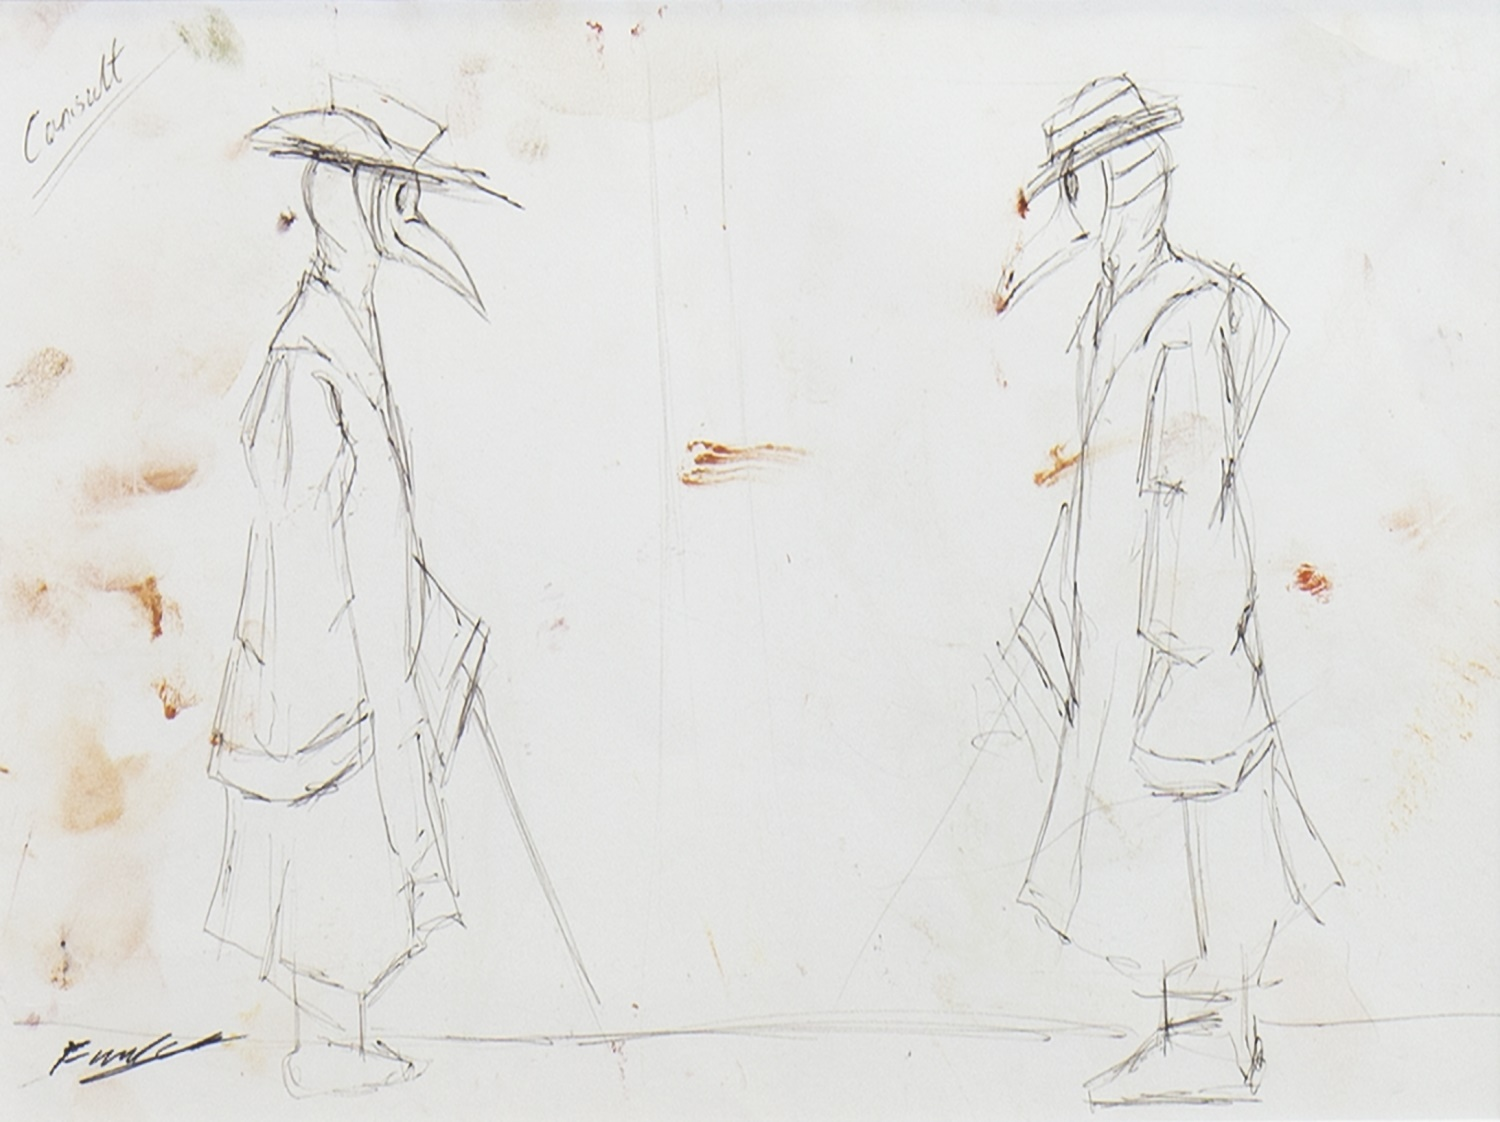 THE CONSULTATION, A PENCIL SKETCH BY FRANK TO - Image 2 of 2